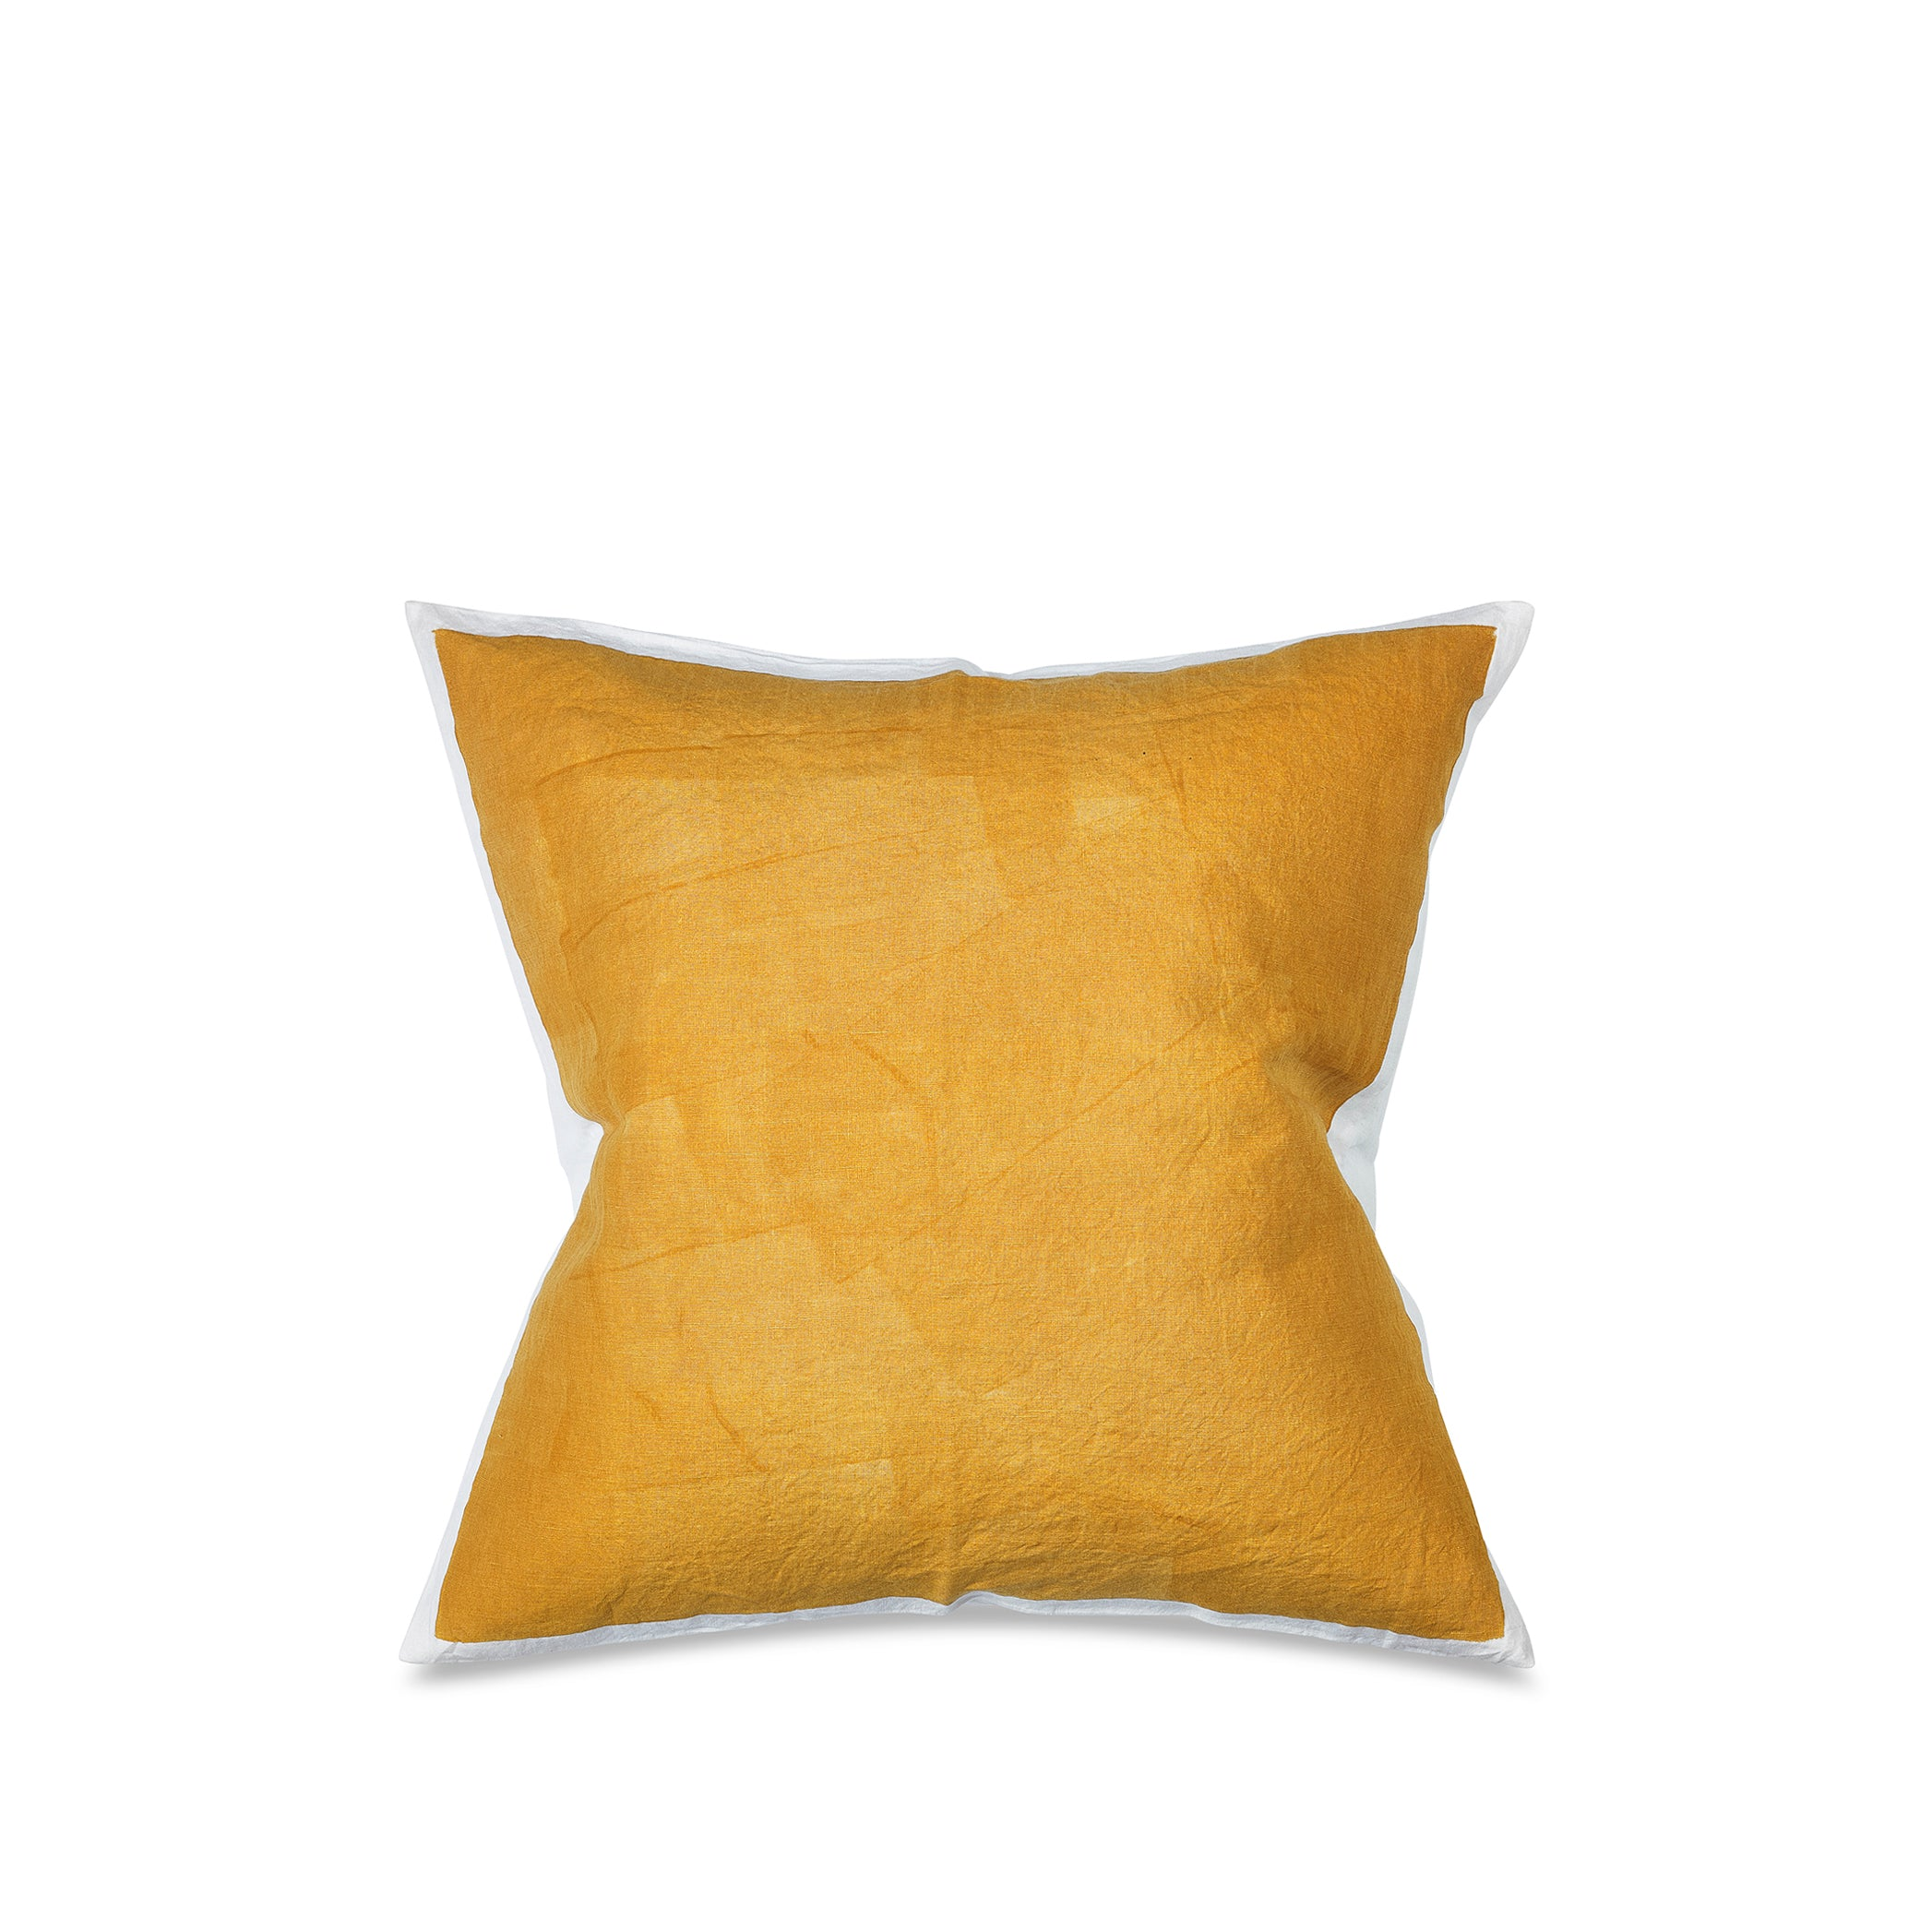 Hand Painted Linen Cushion in Mustard Yellow, 60cm x 60cm